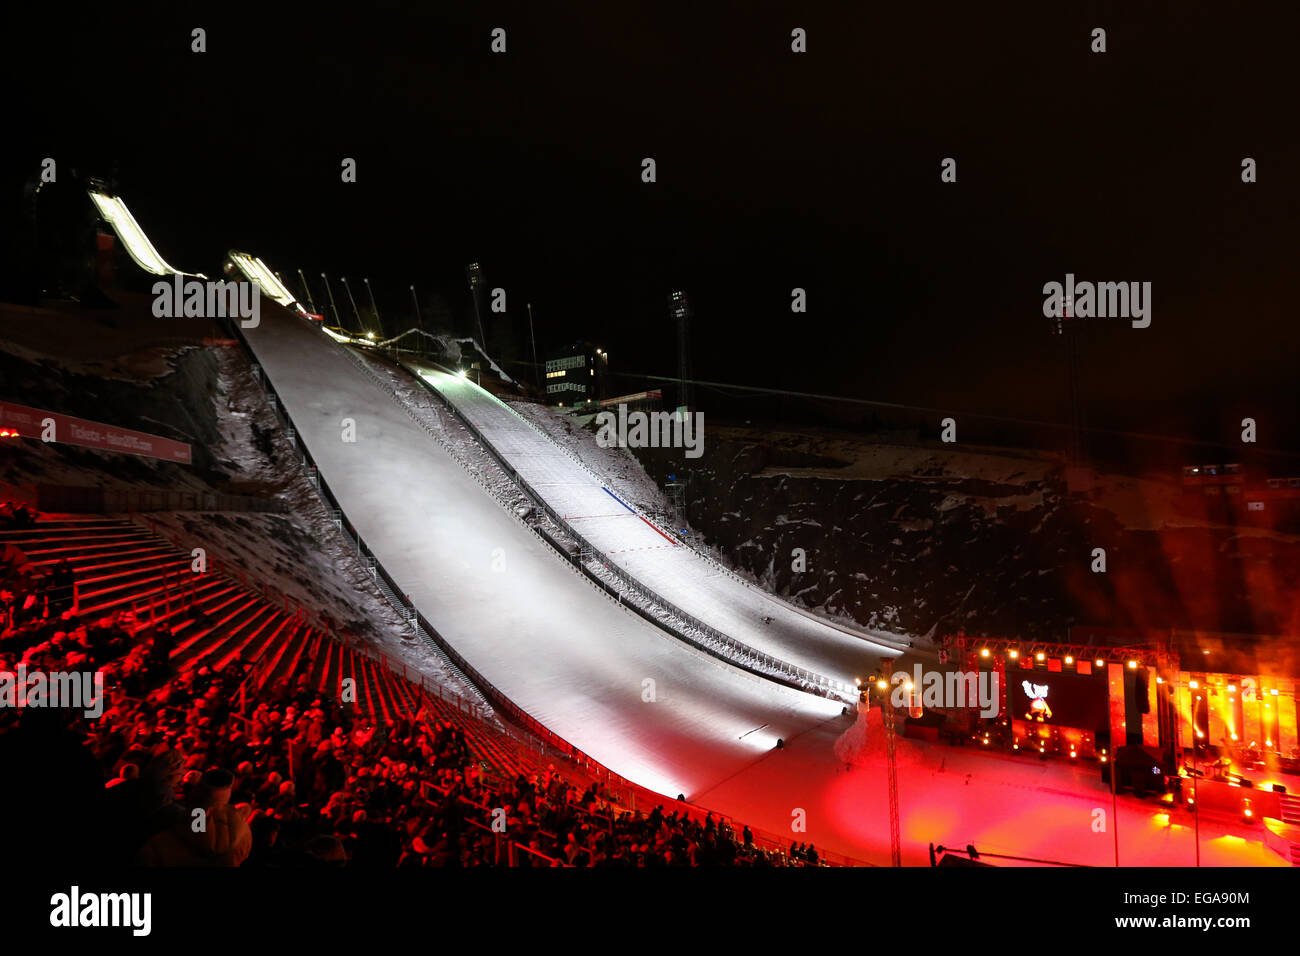 18.02.2015, Falun, Dalarna County, Sweden. FIS Nordic World Ski Championships, Championship opening ceremony highlights. - Stock Image